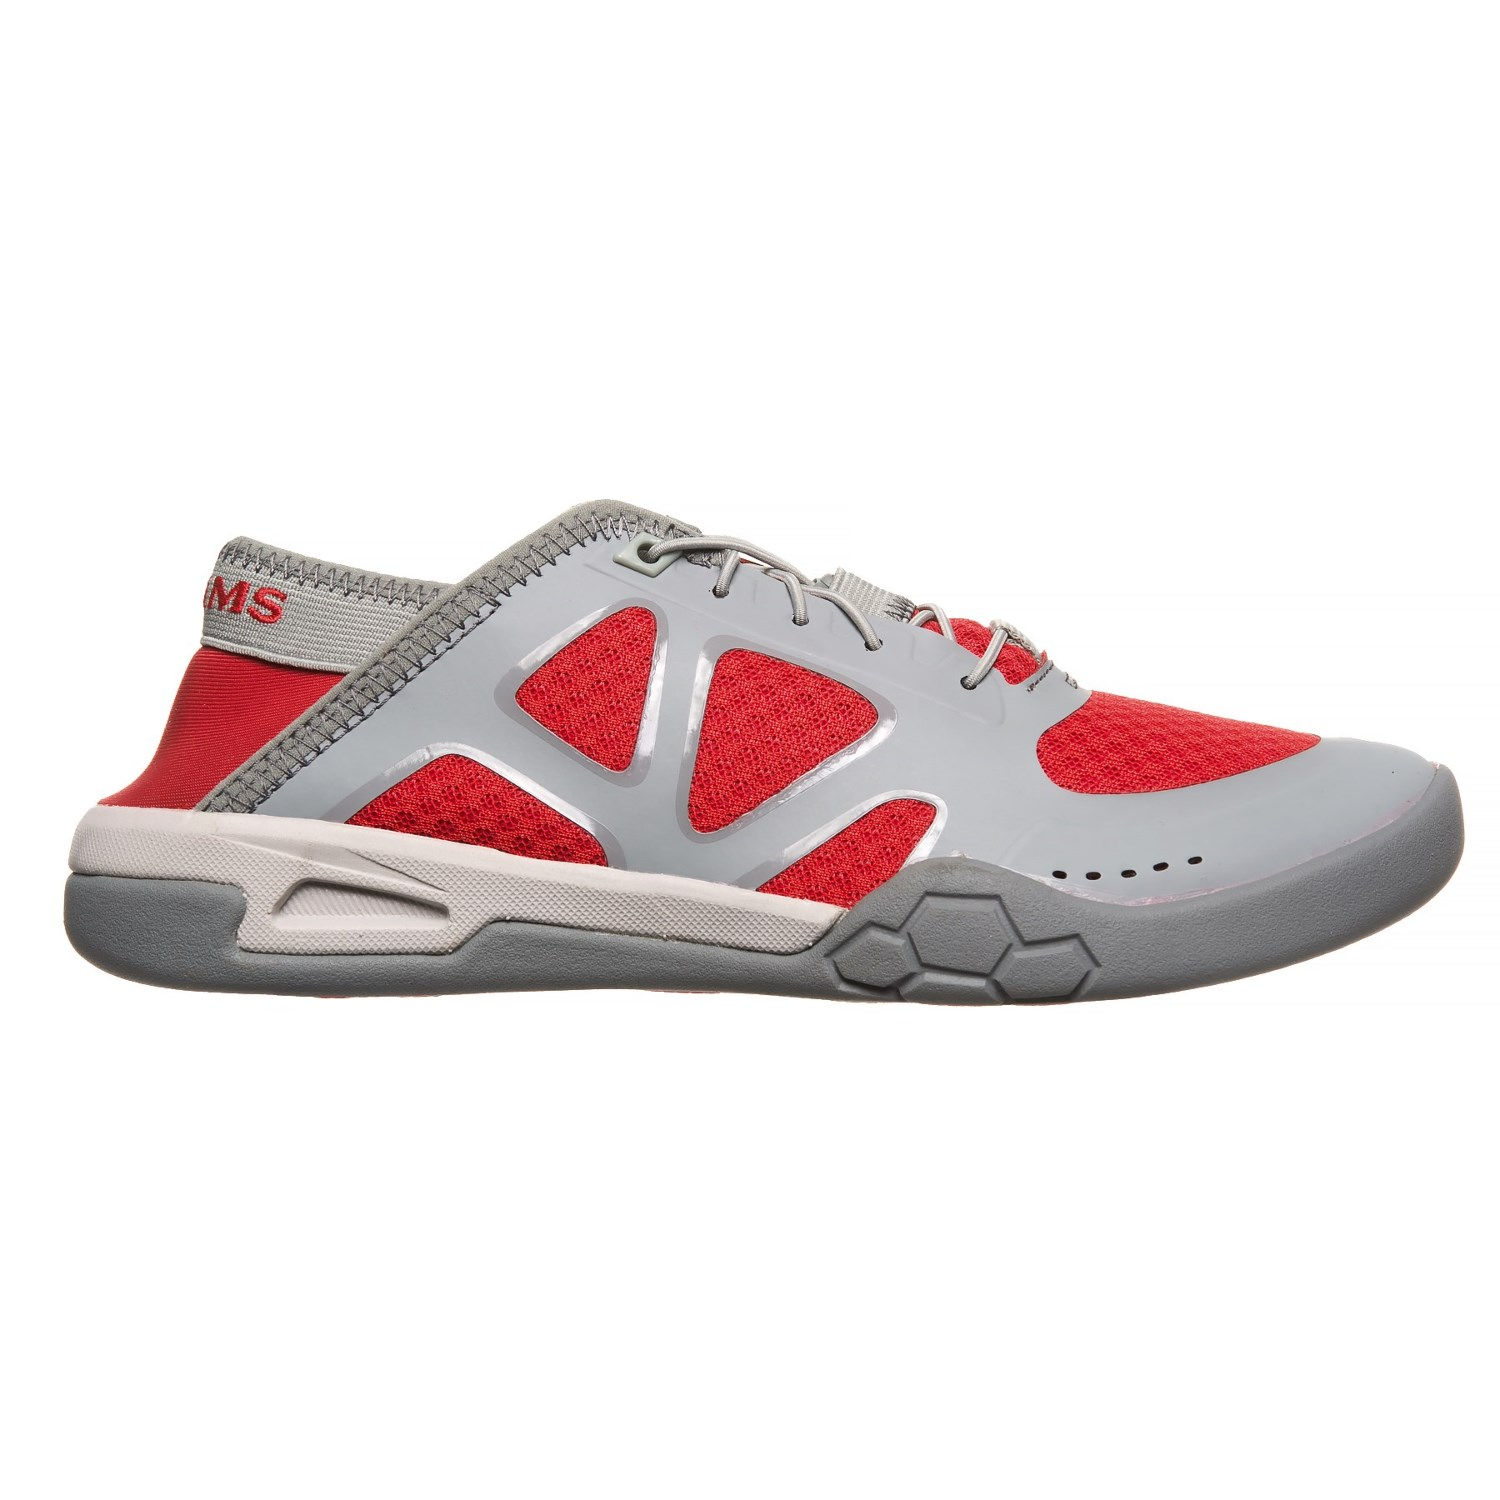 208640e38dcb Simms Currents Shoes (For Women) - Save 64%